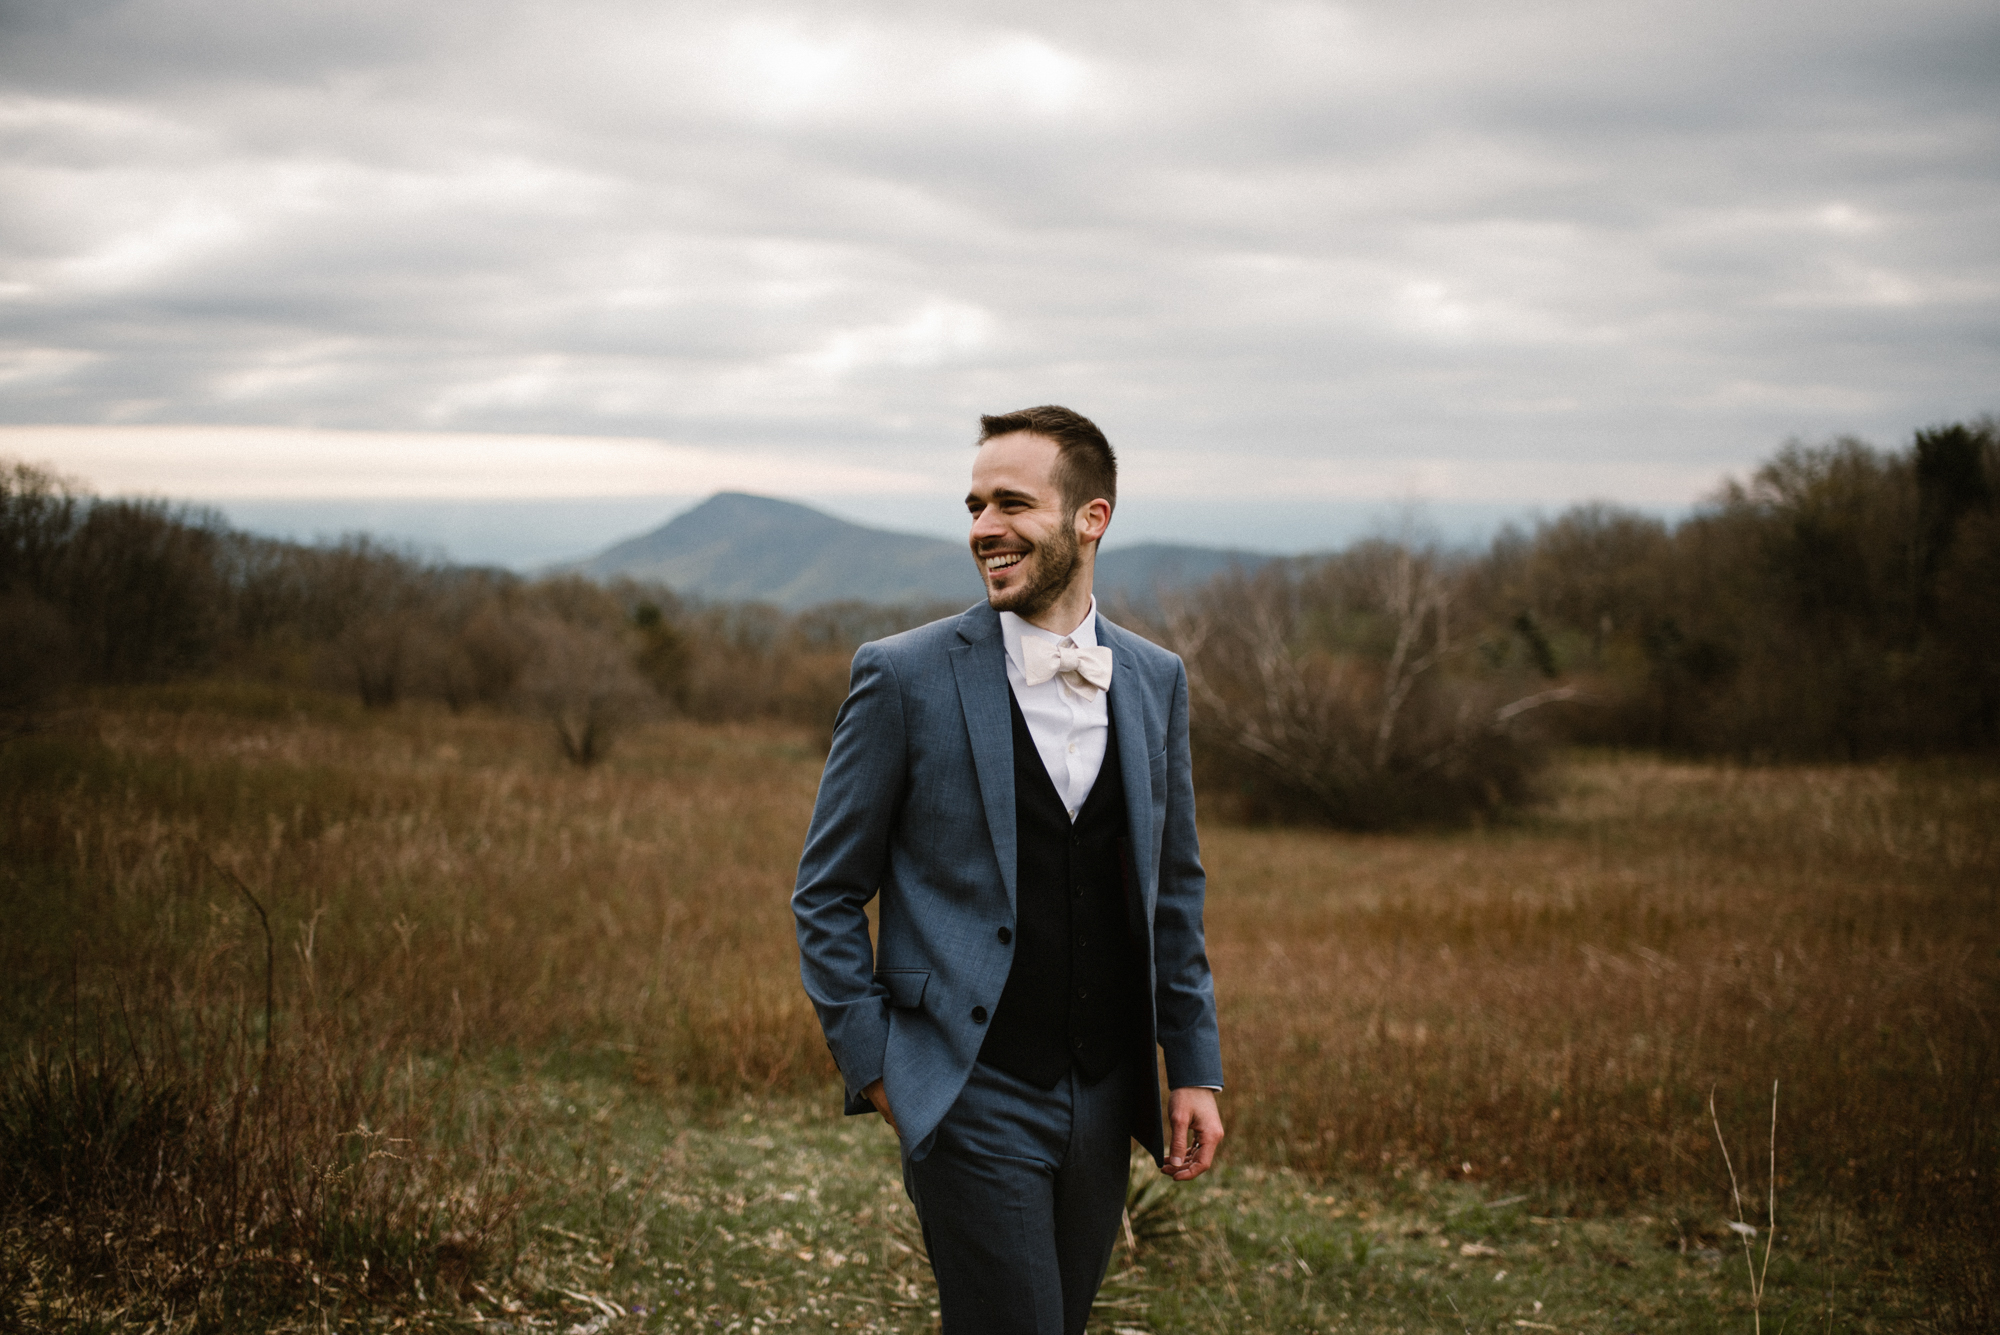 Paula and Andrew - Small Adventurous Wedding in Shenandoah National Park - Blue Ridge Mountain Wedding - White Sails Creative - Mountain Elopement_41.jpg